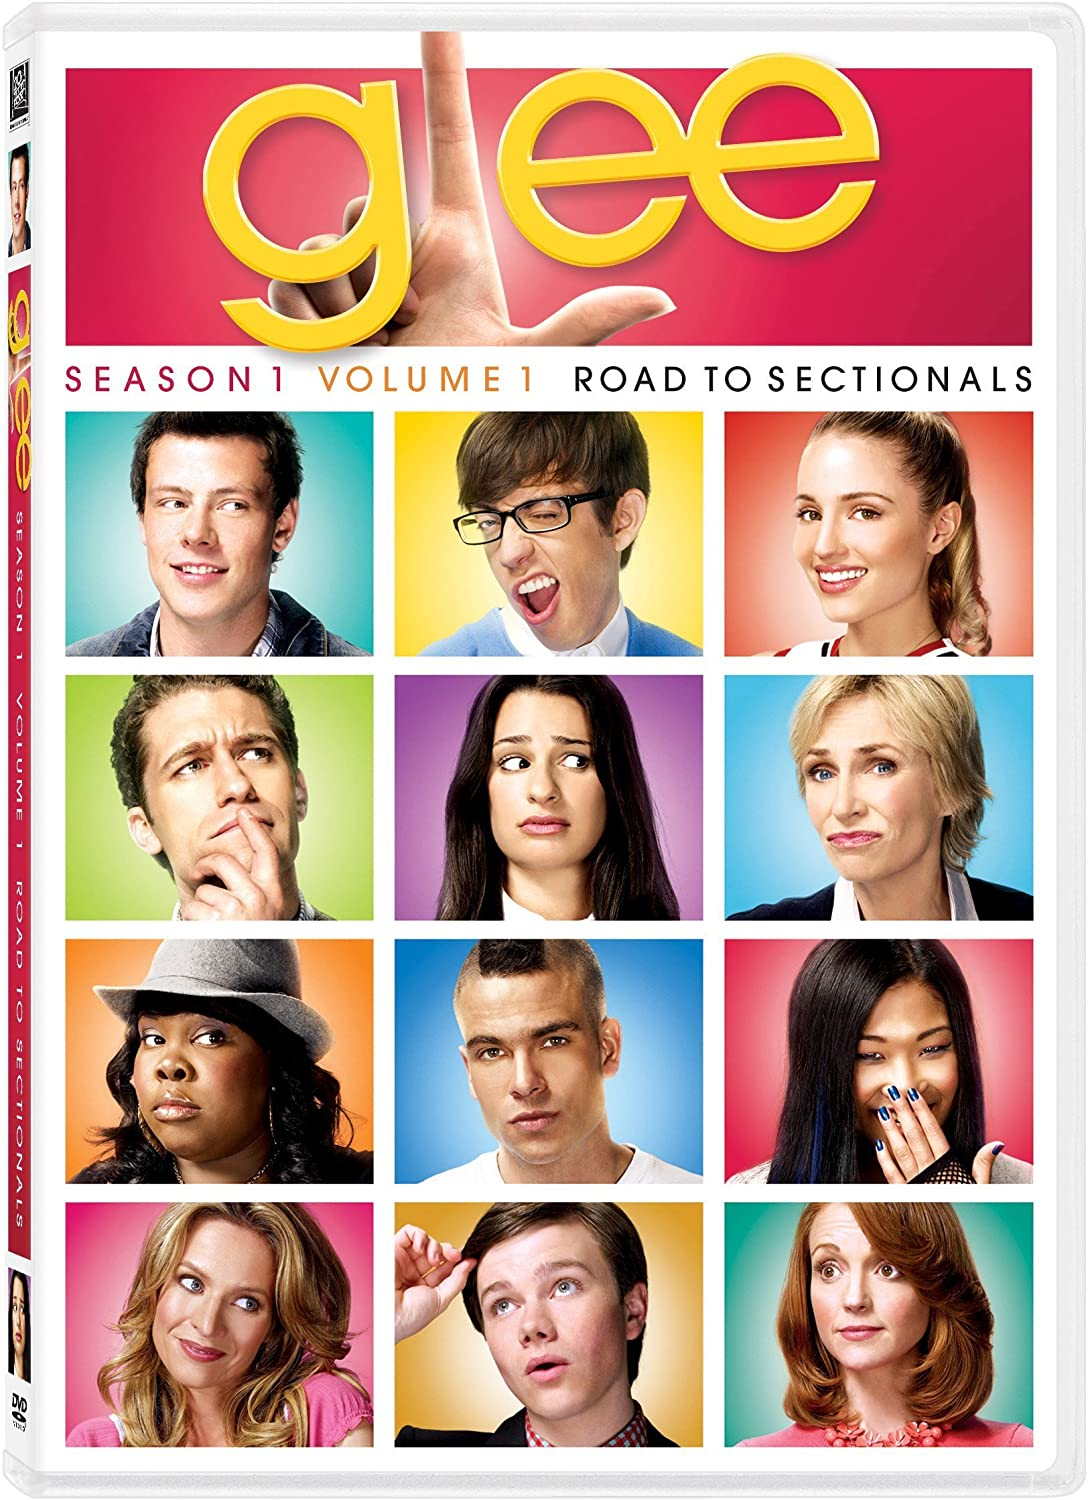 glee season 4 full episodes free online